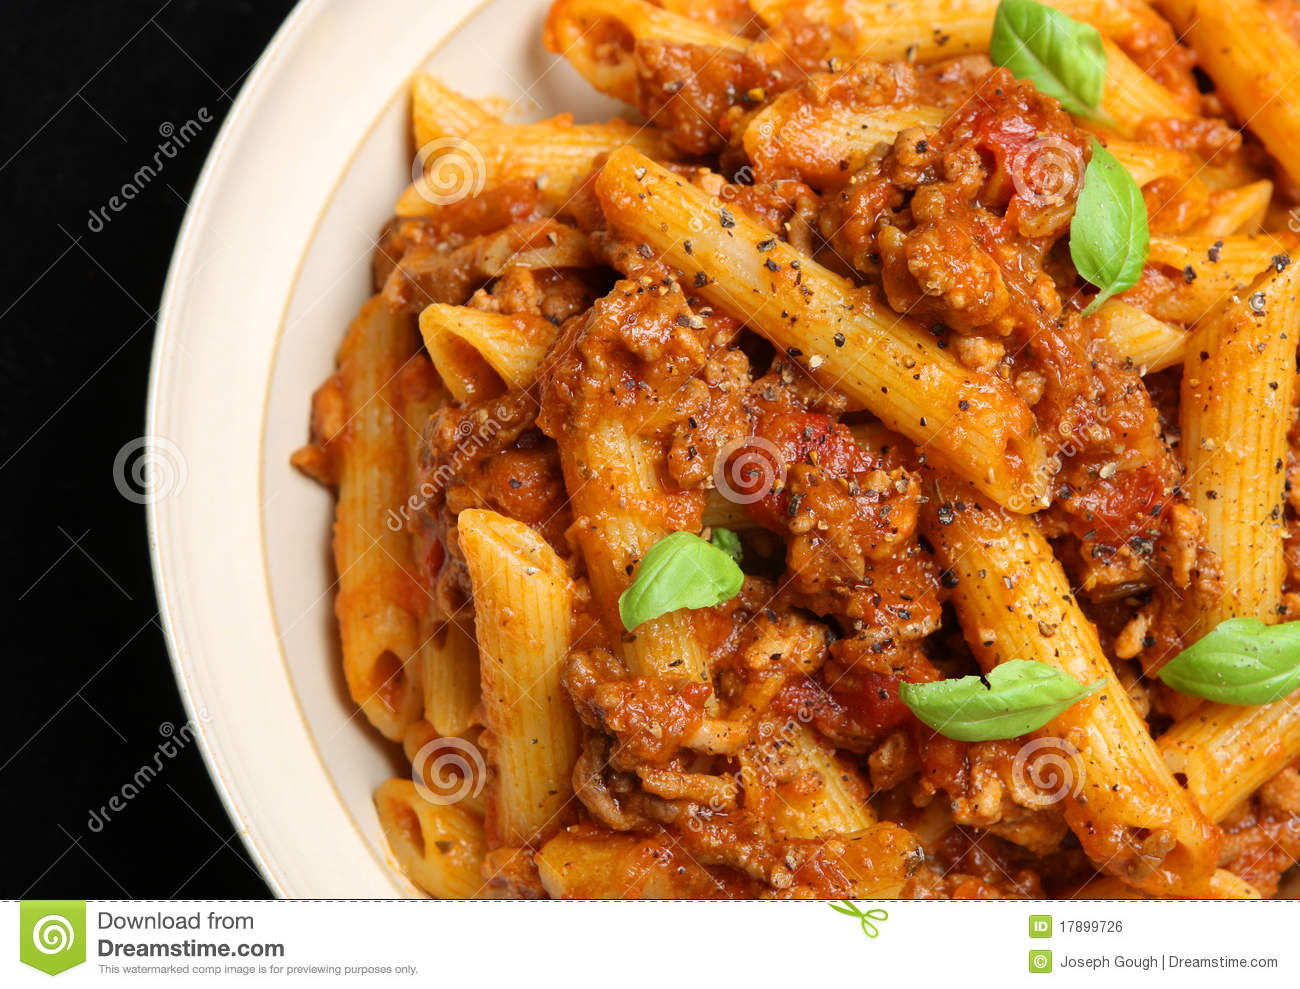 Penne Pasta With Bolognese Sauce Royalty Free Stock Image - Image ...